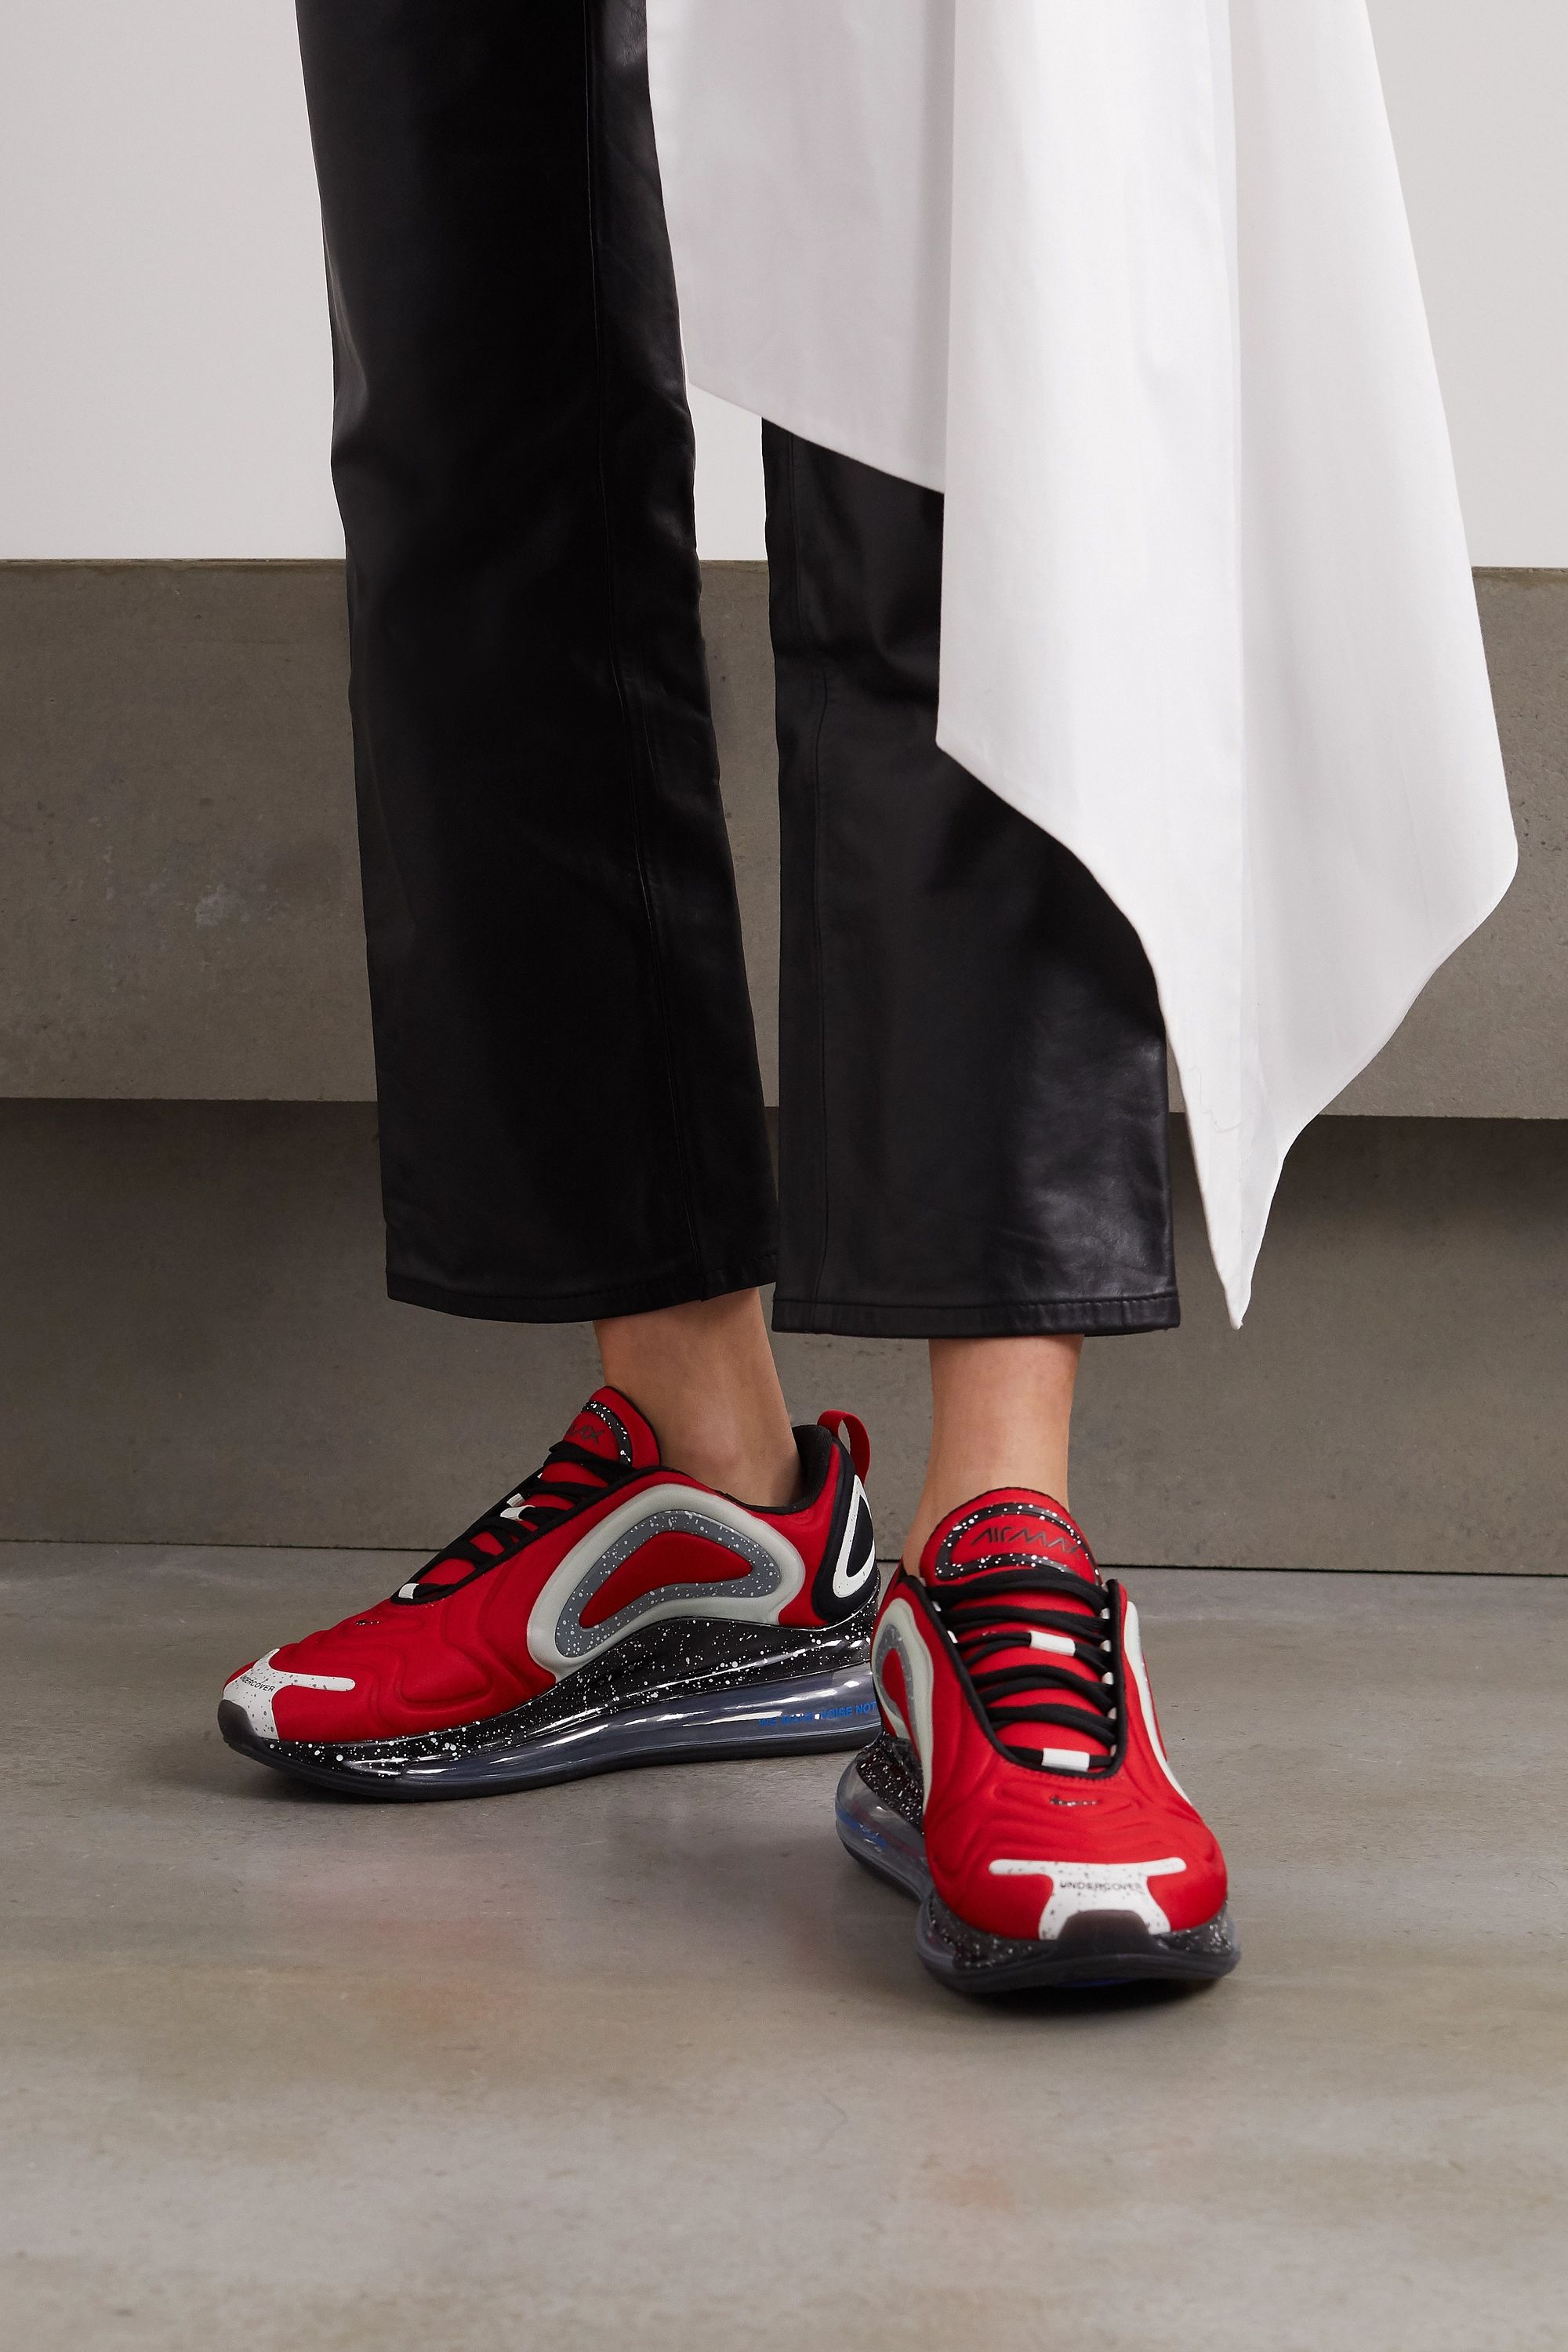 Red Undercover Air Max 720 Neoprene And Rubber Sneakers Nike